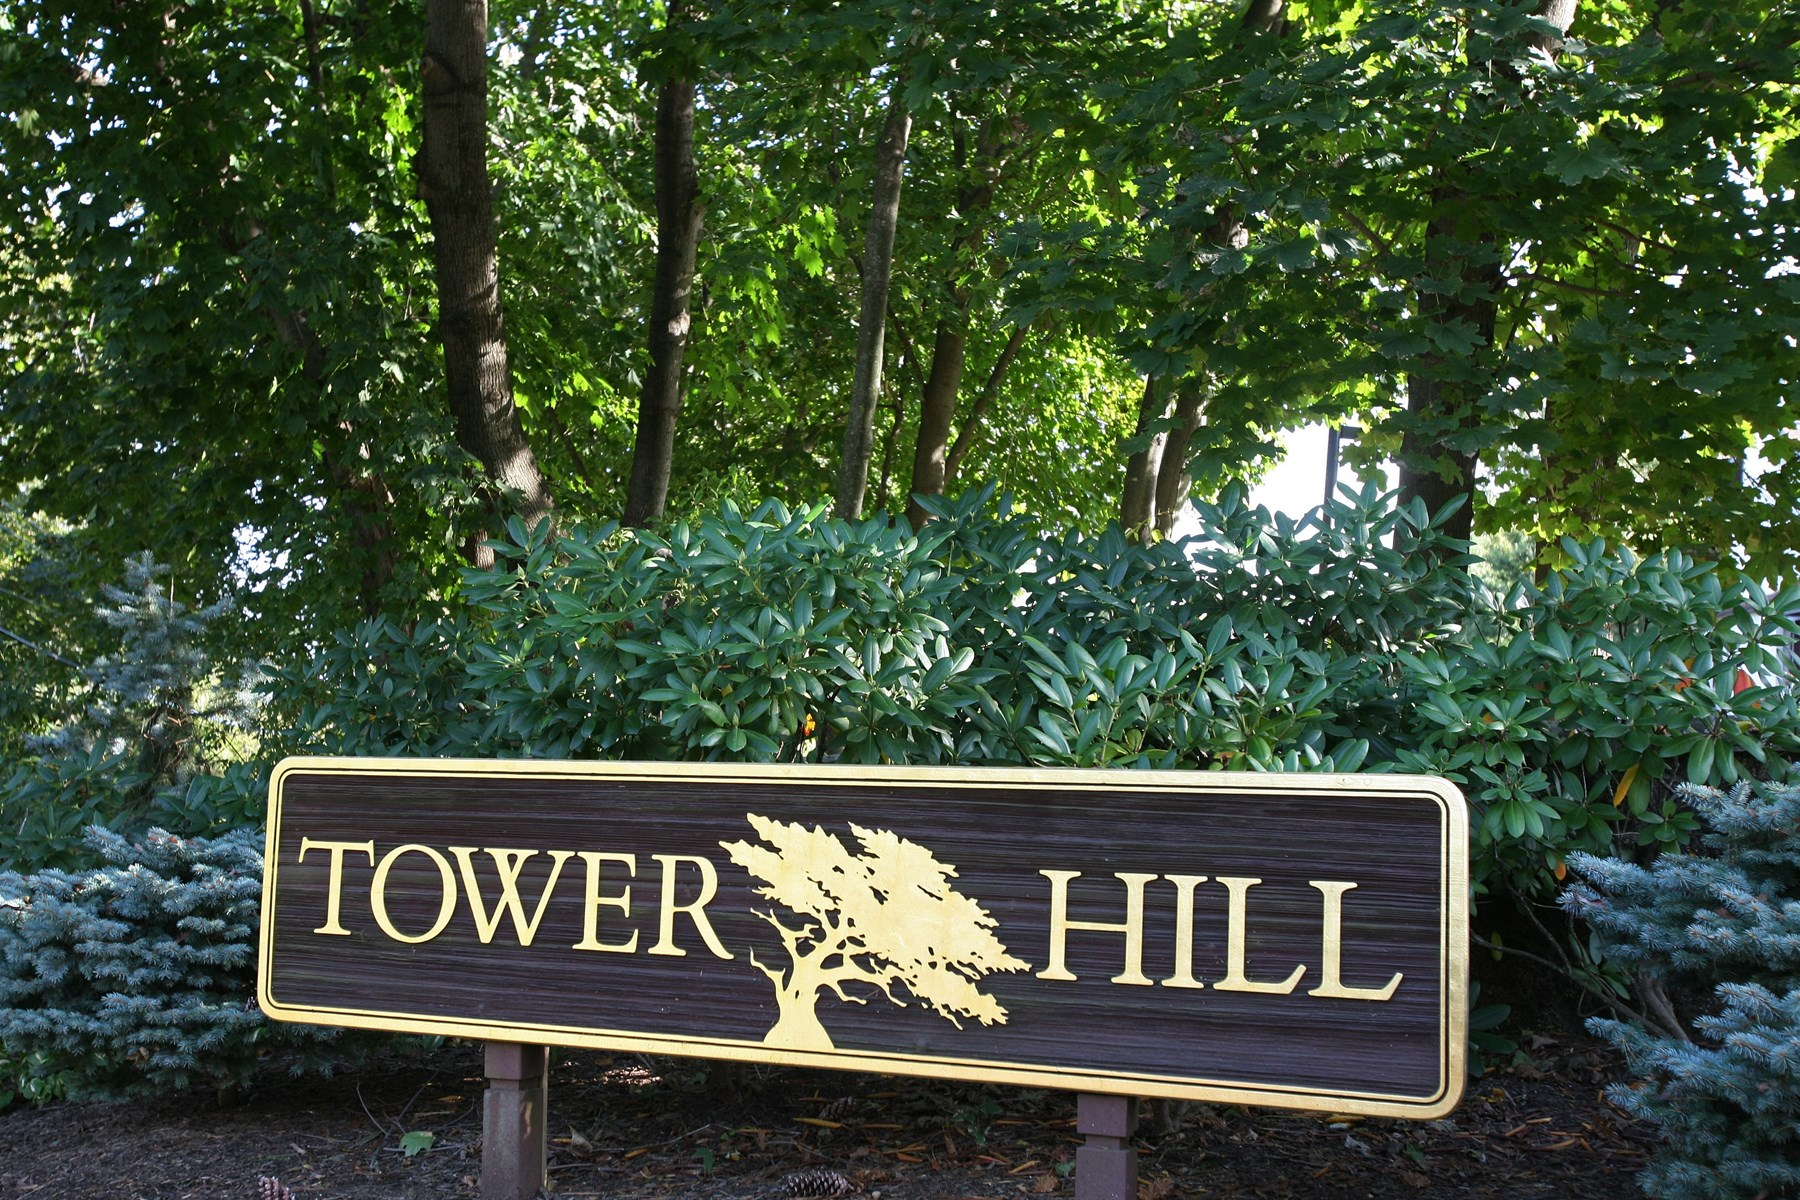 Condominium for Sale at Sunset Views Easy Living 89 Tower Hill Dr Red Bank, New Jersey, 07701 United States